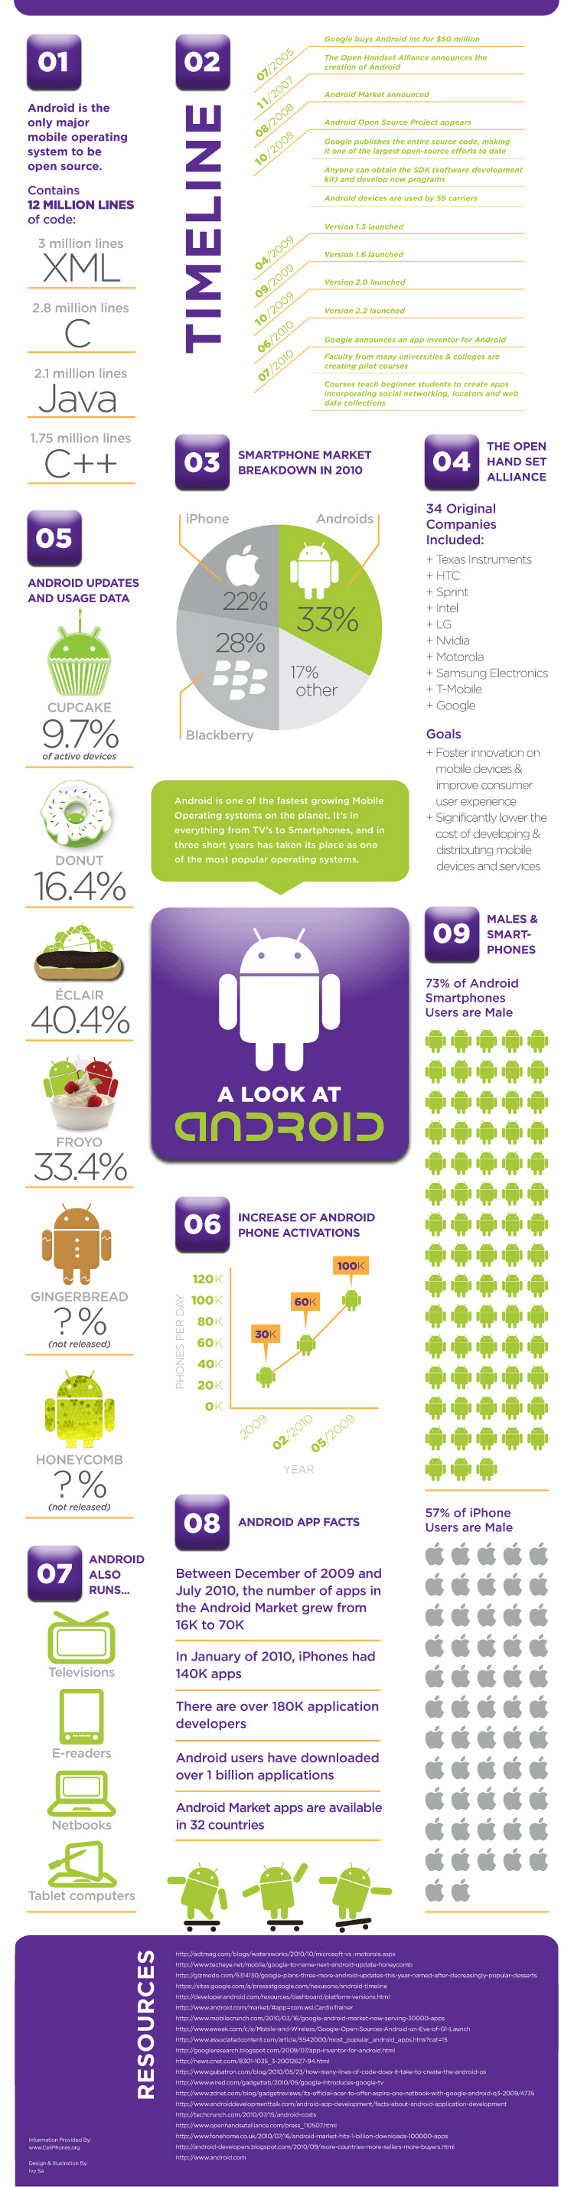 A-Look-At-Android-infographic